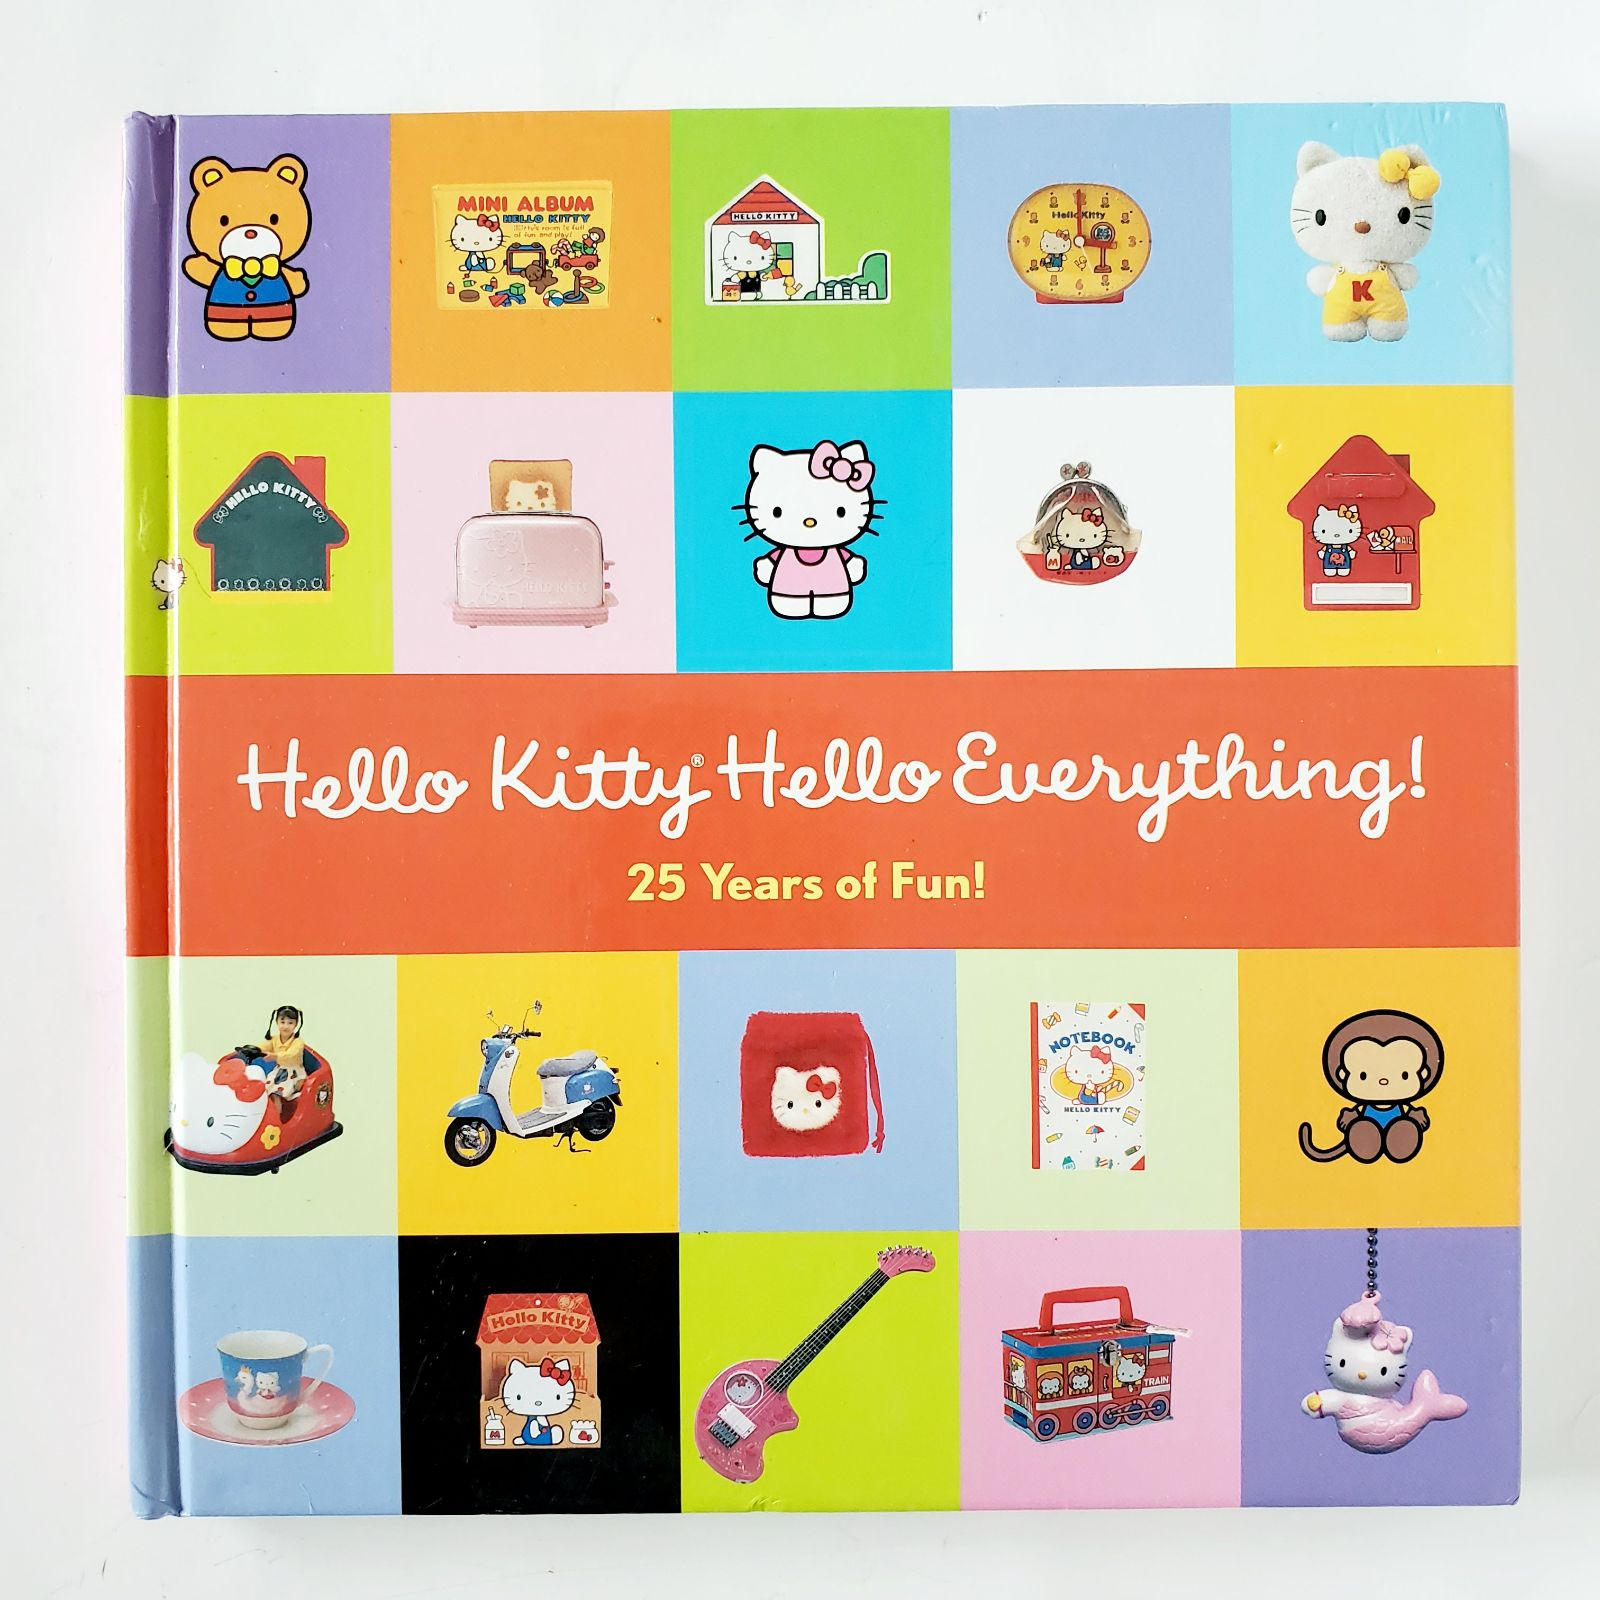 Hello Kitty Hello Everything hardcover